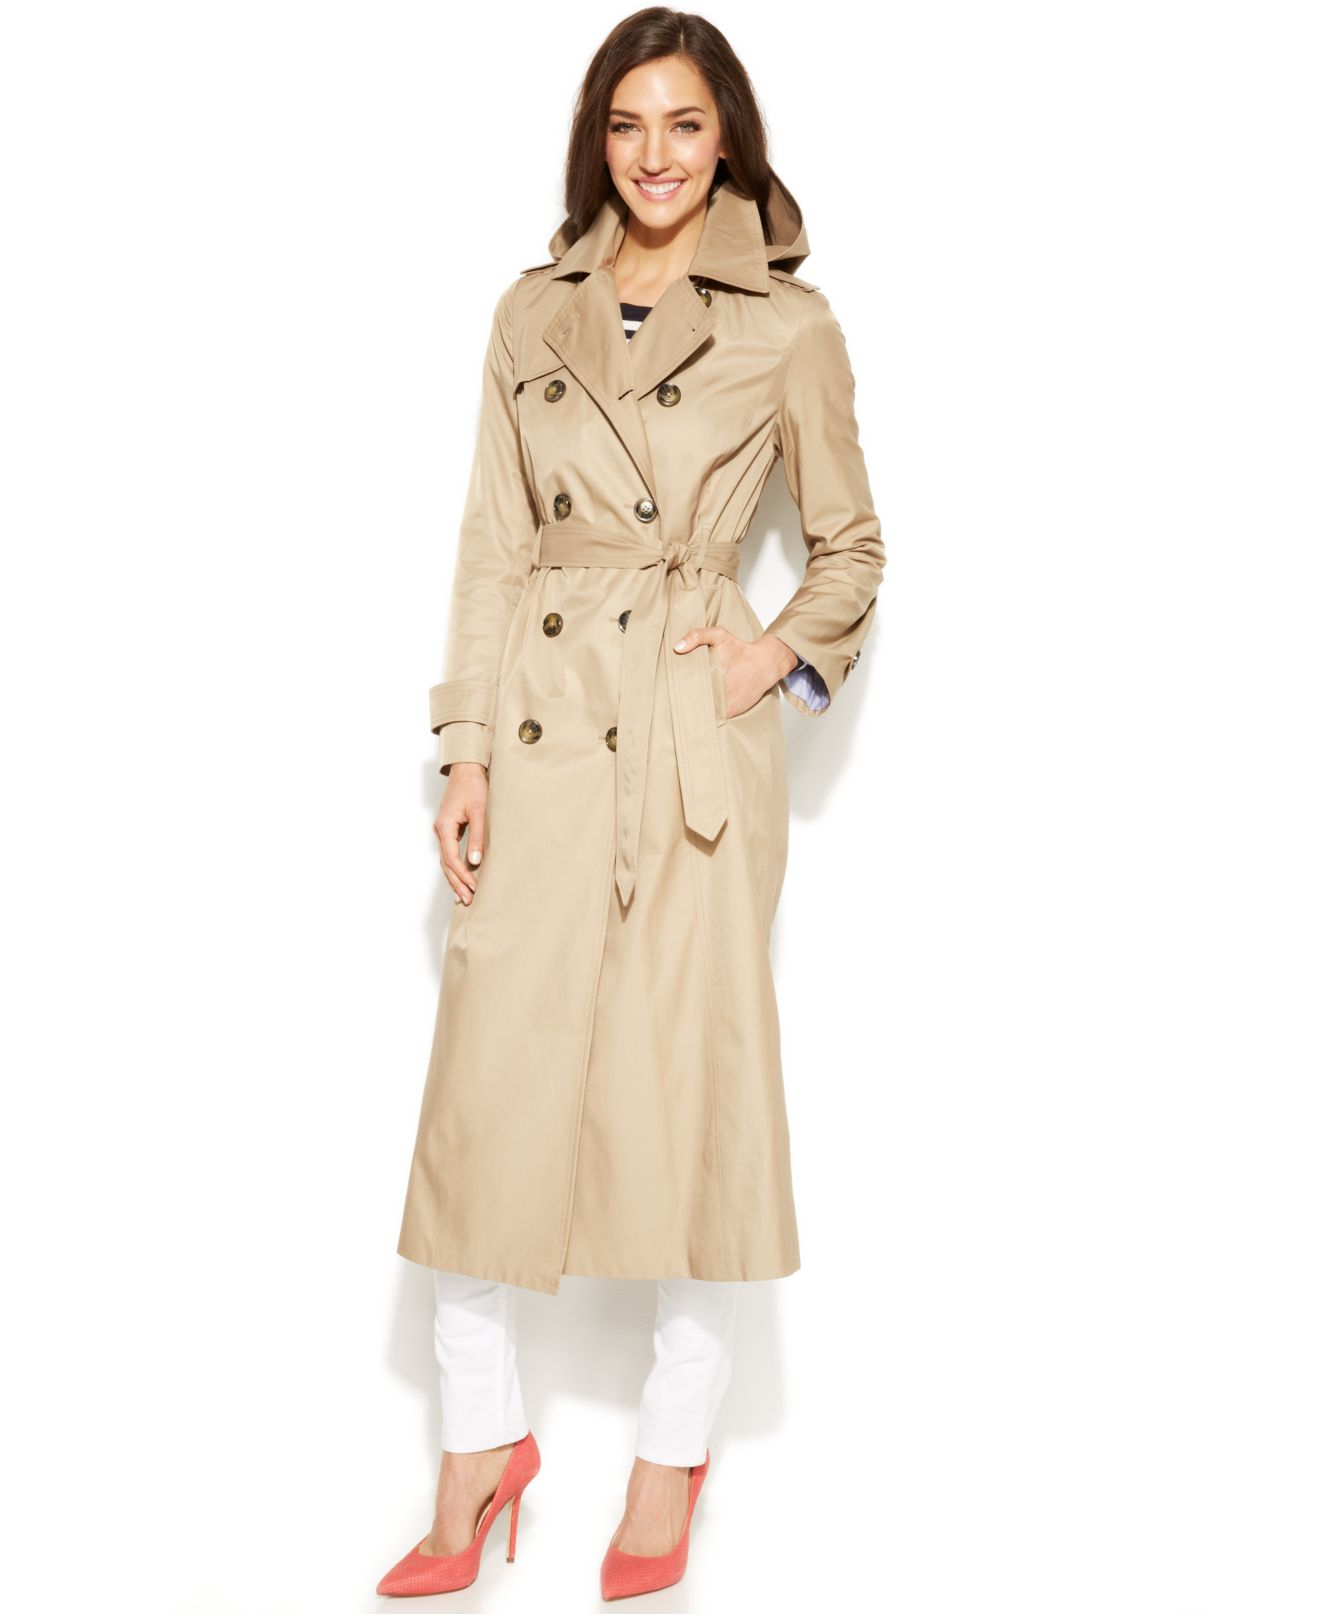 fa2a4afd10ddf Lyst - London Fog Hooded Double-Breasted Maxi Trench Coat in Natural